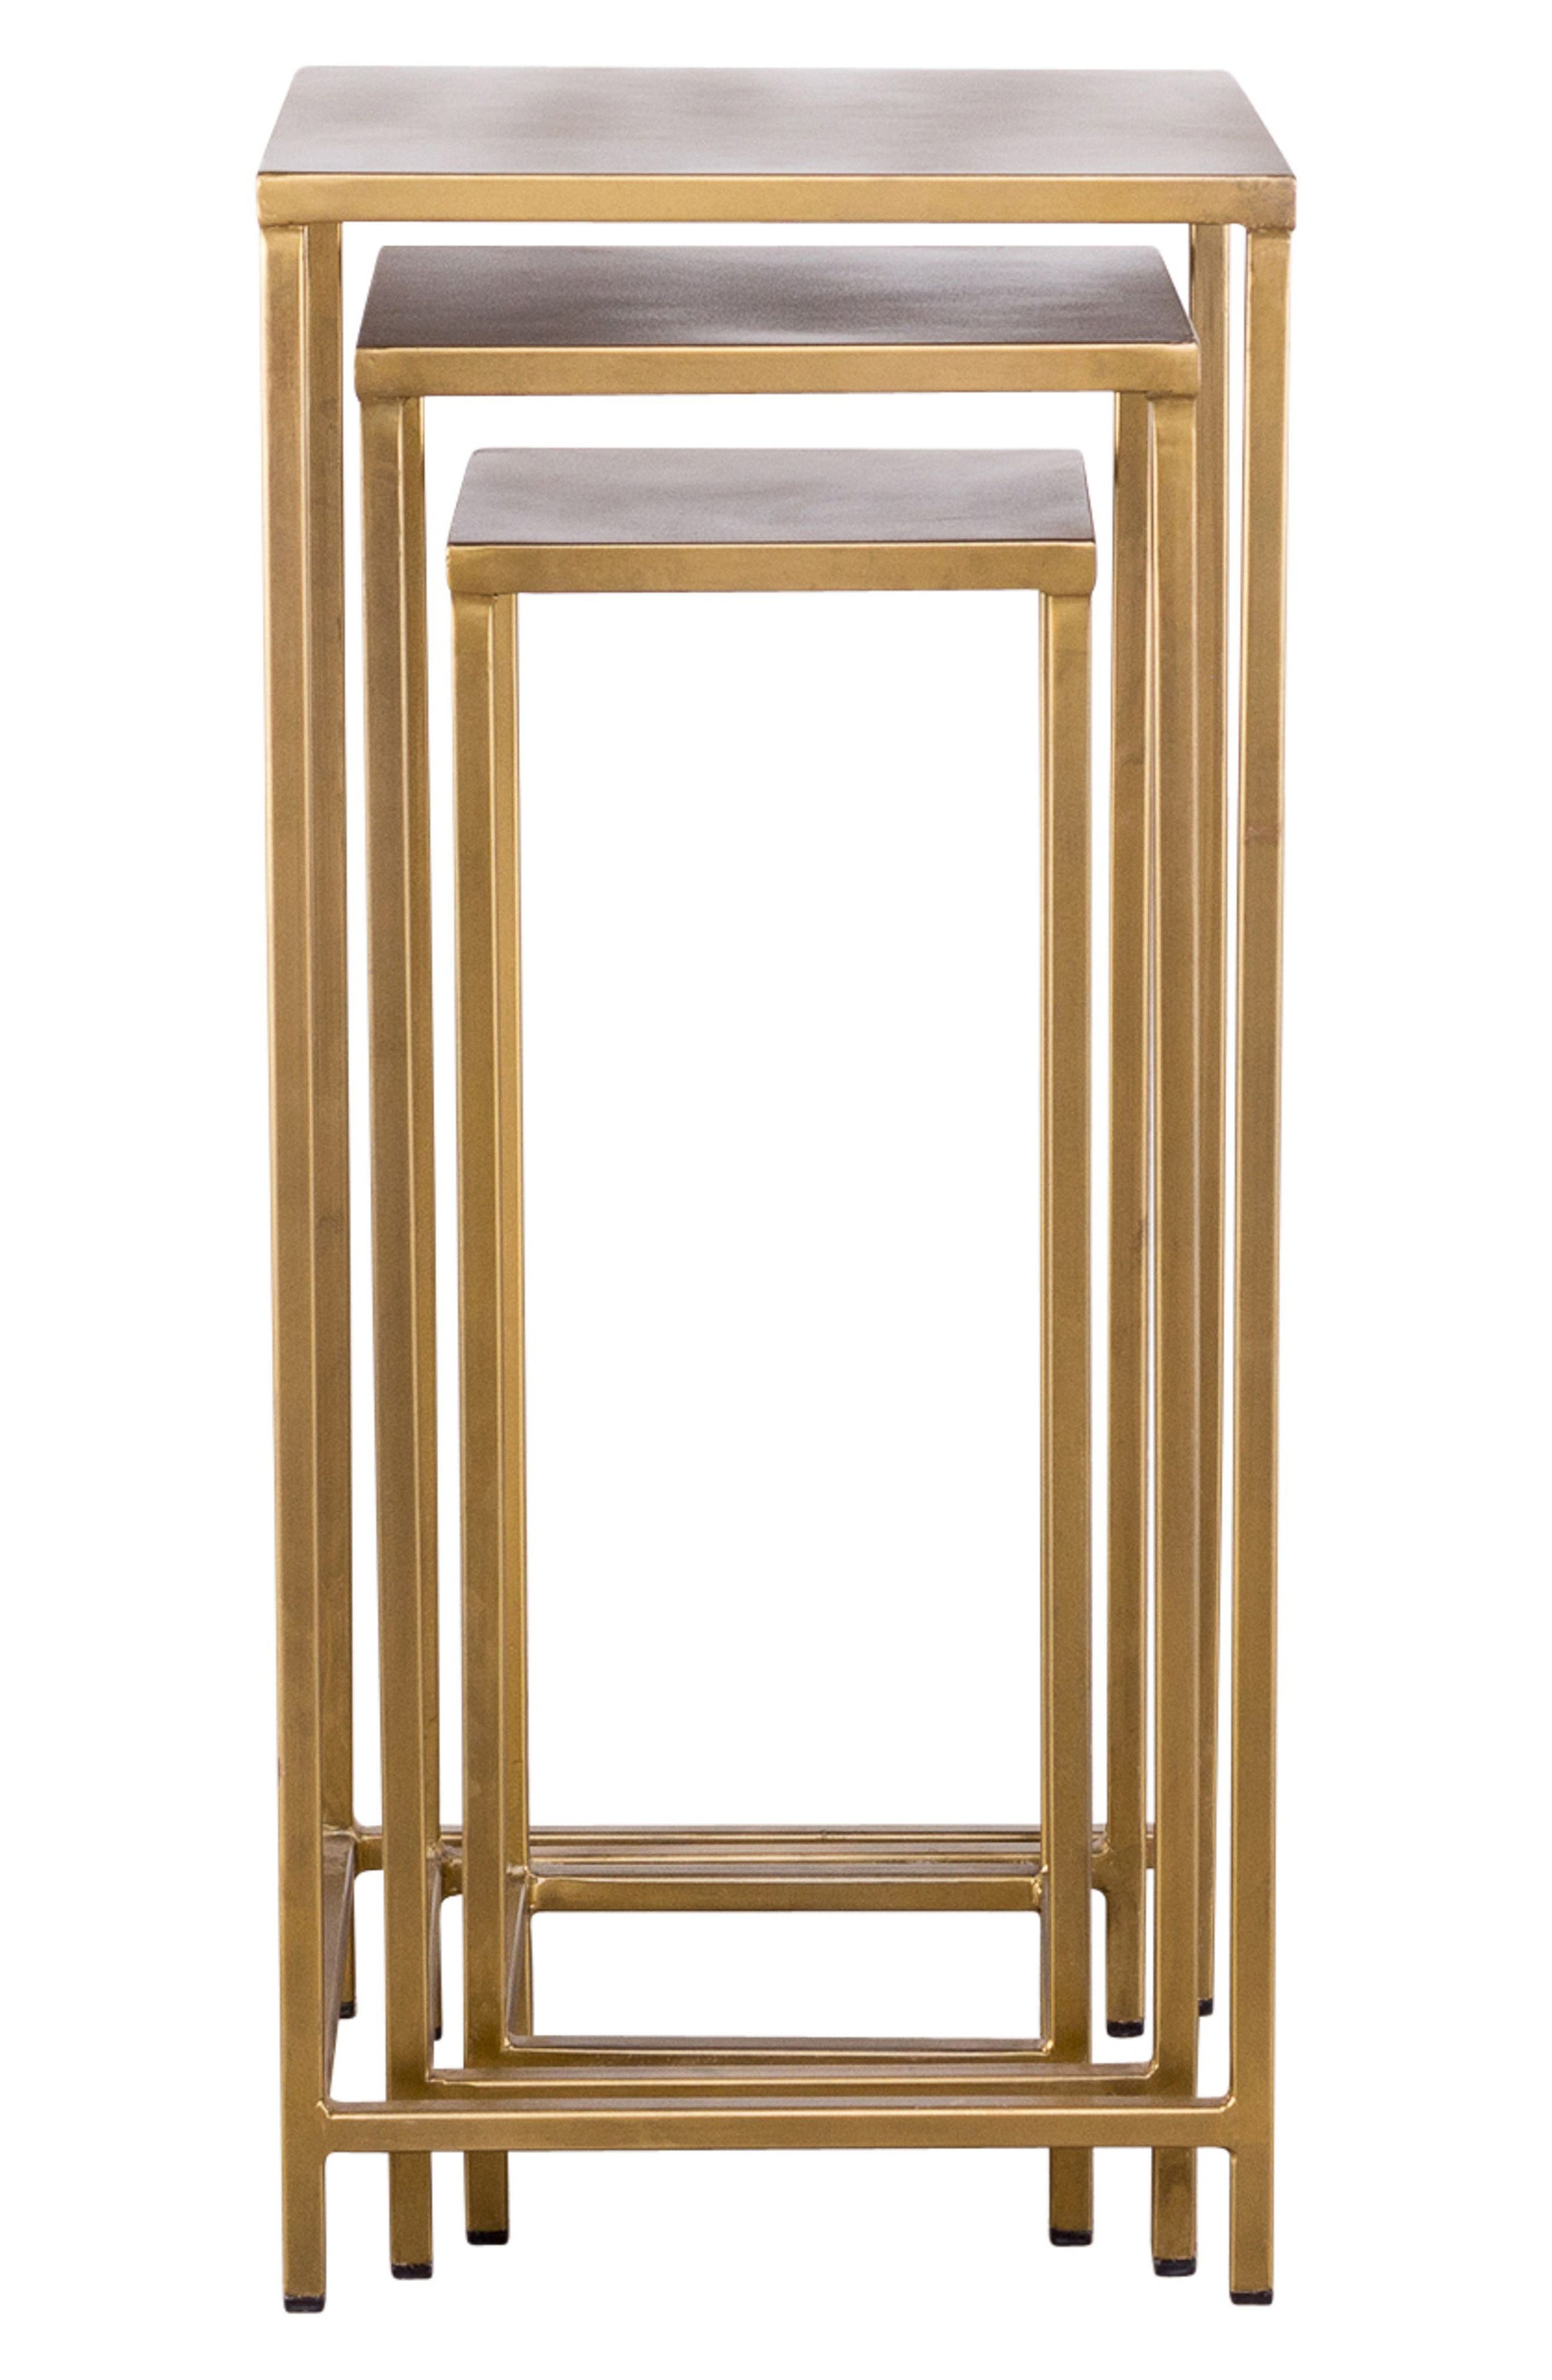 Pollock Set of 3 Tall Nesting Tables,                         Main,                         color, Brass